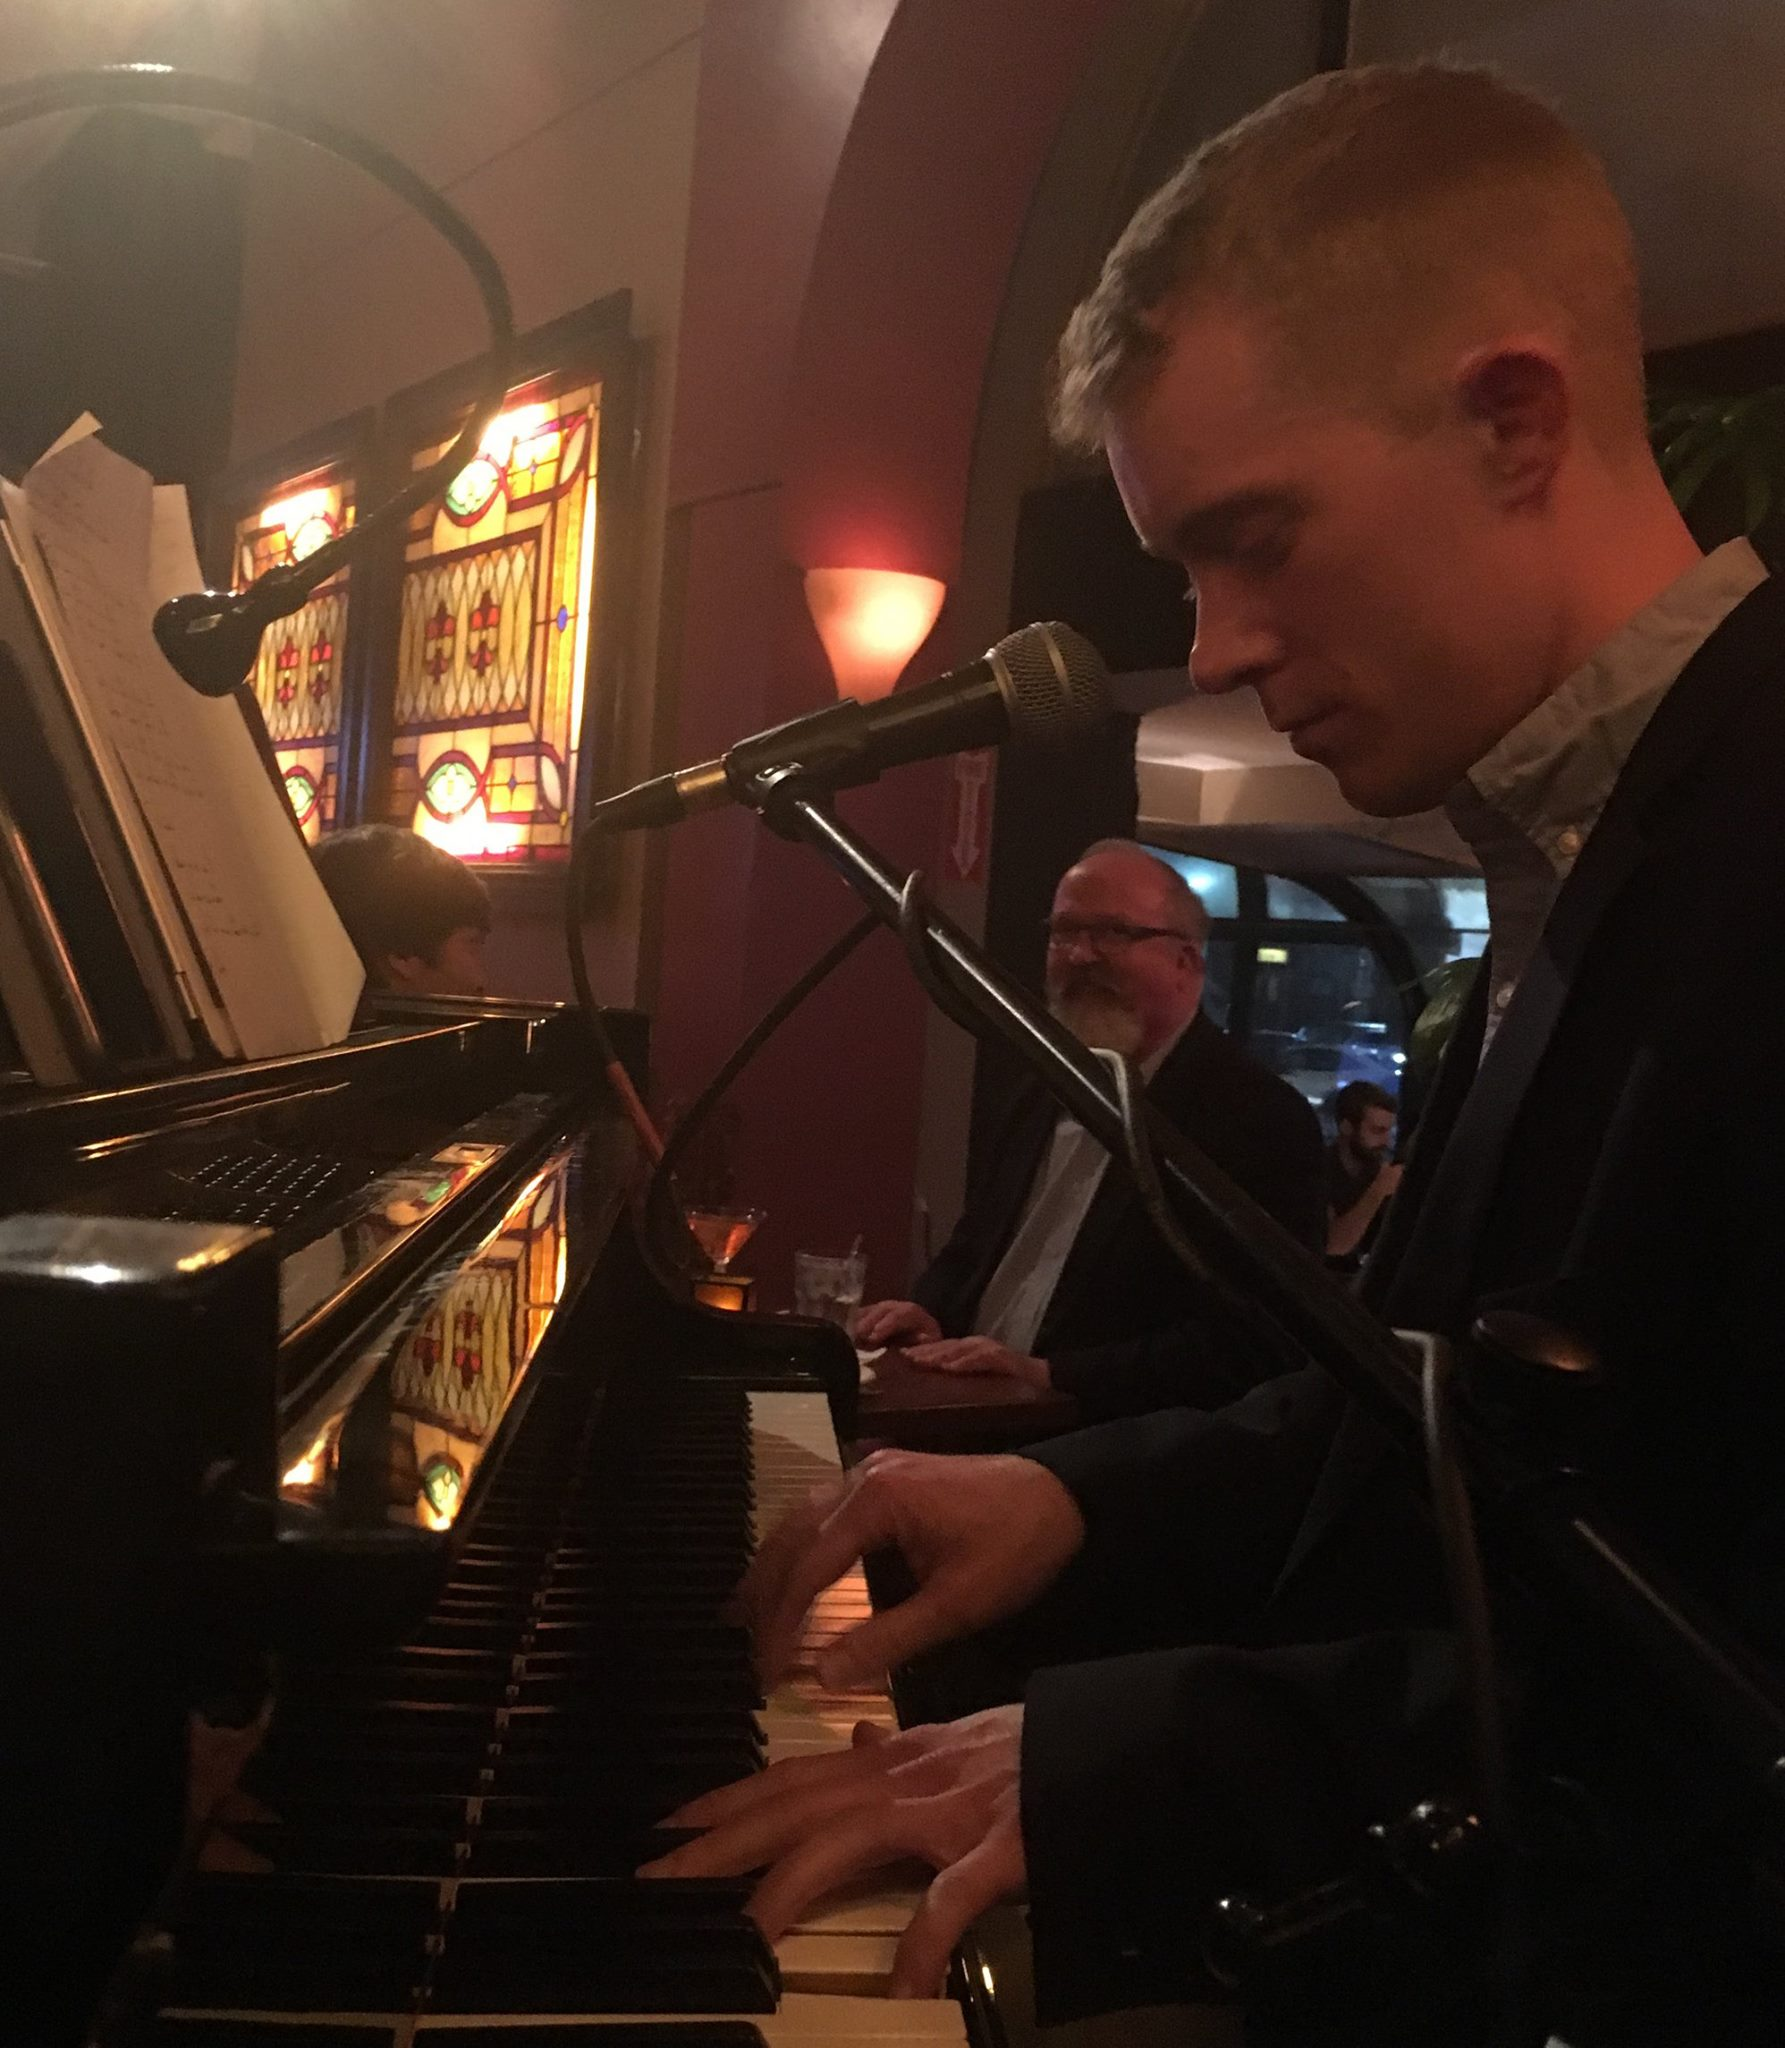 PIANO BAR SHOWS - I play almost 200 nights a year in New England. I play at Tin Pan Alley in Provincetown, Massachusetts and at the Front Porch Piano Bar in Ogunquit Maine.